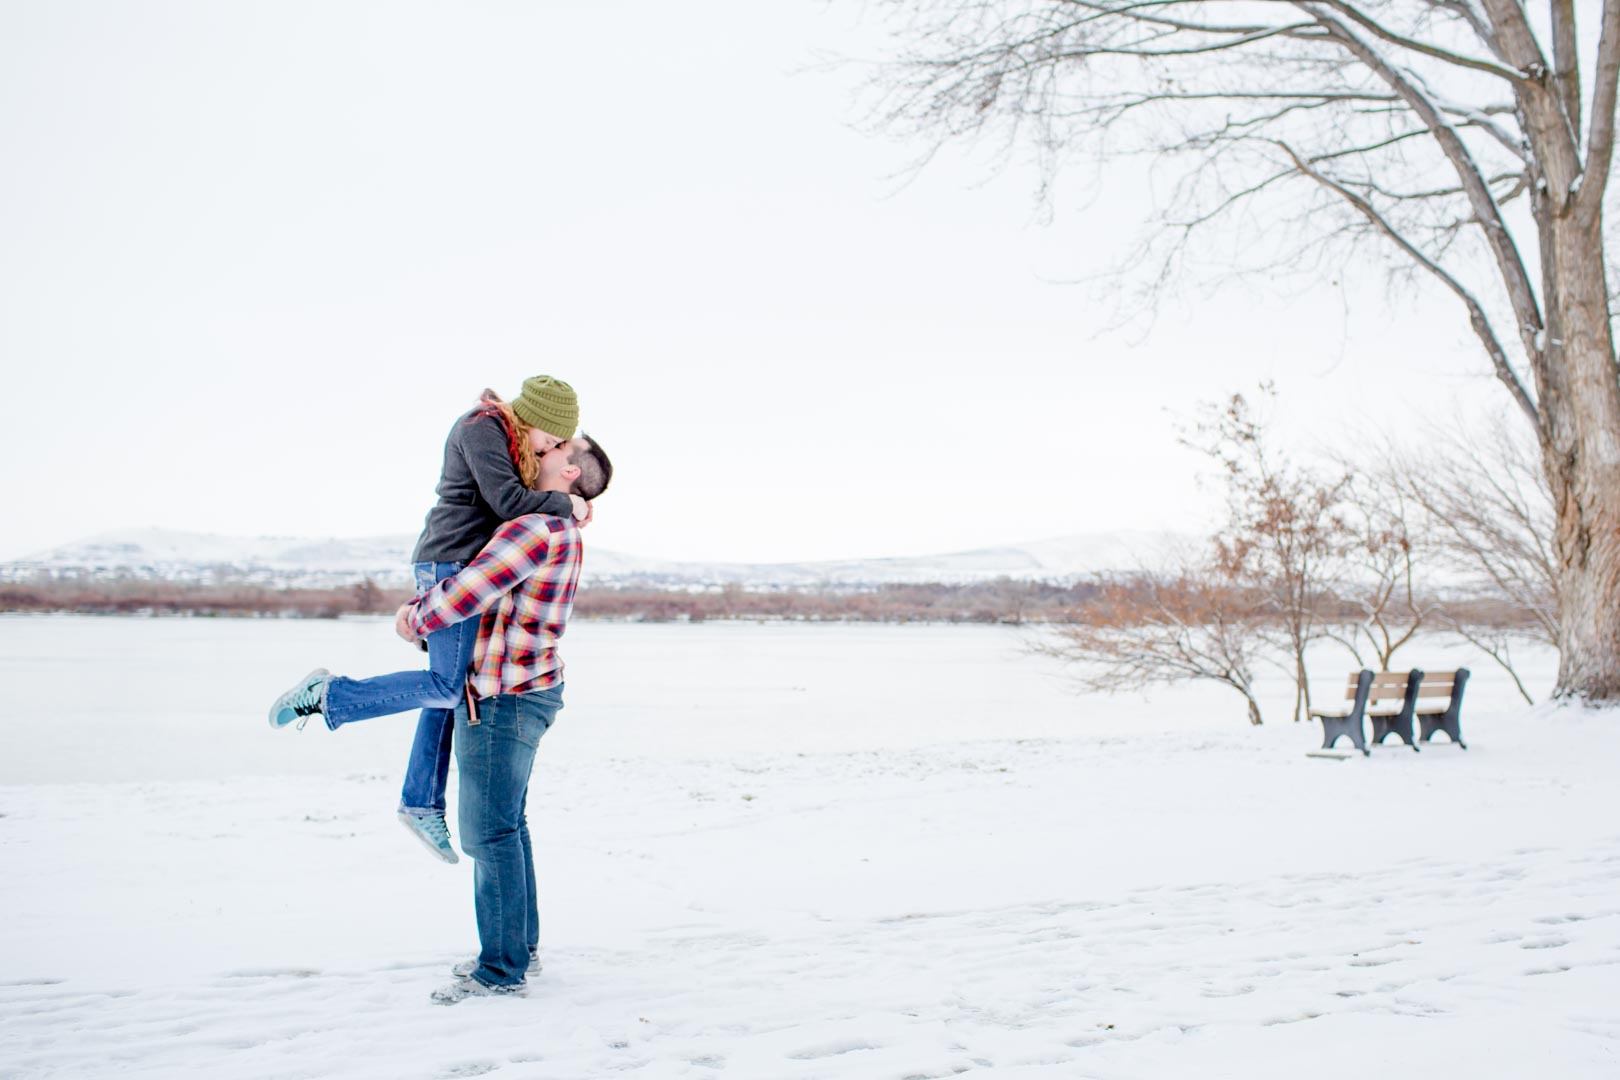 Winter Special:Up to 30% off Your Engagement Session - Offer valid until March 31st. See our Engagement Portraits Portfolio and Book Your Session. (We can choose s date later.)Use Code FEBENGAGE.